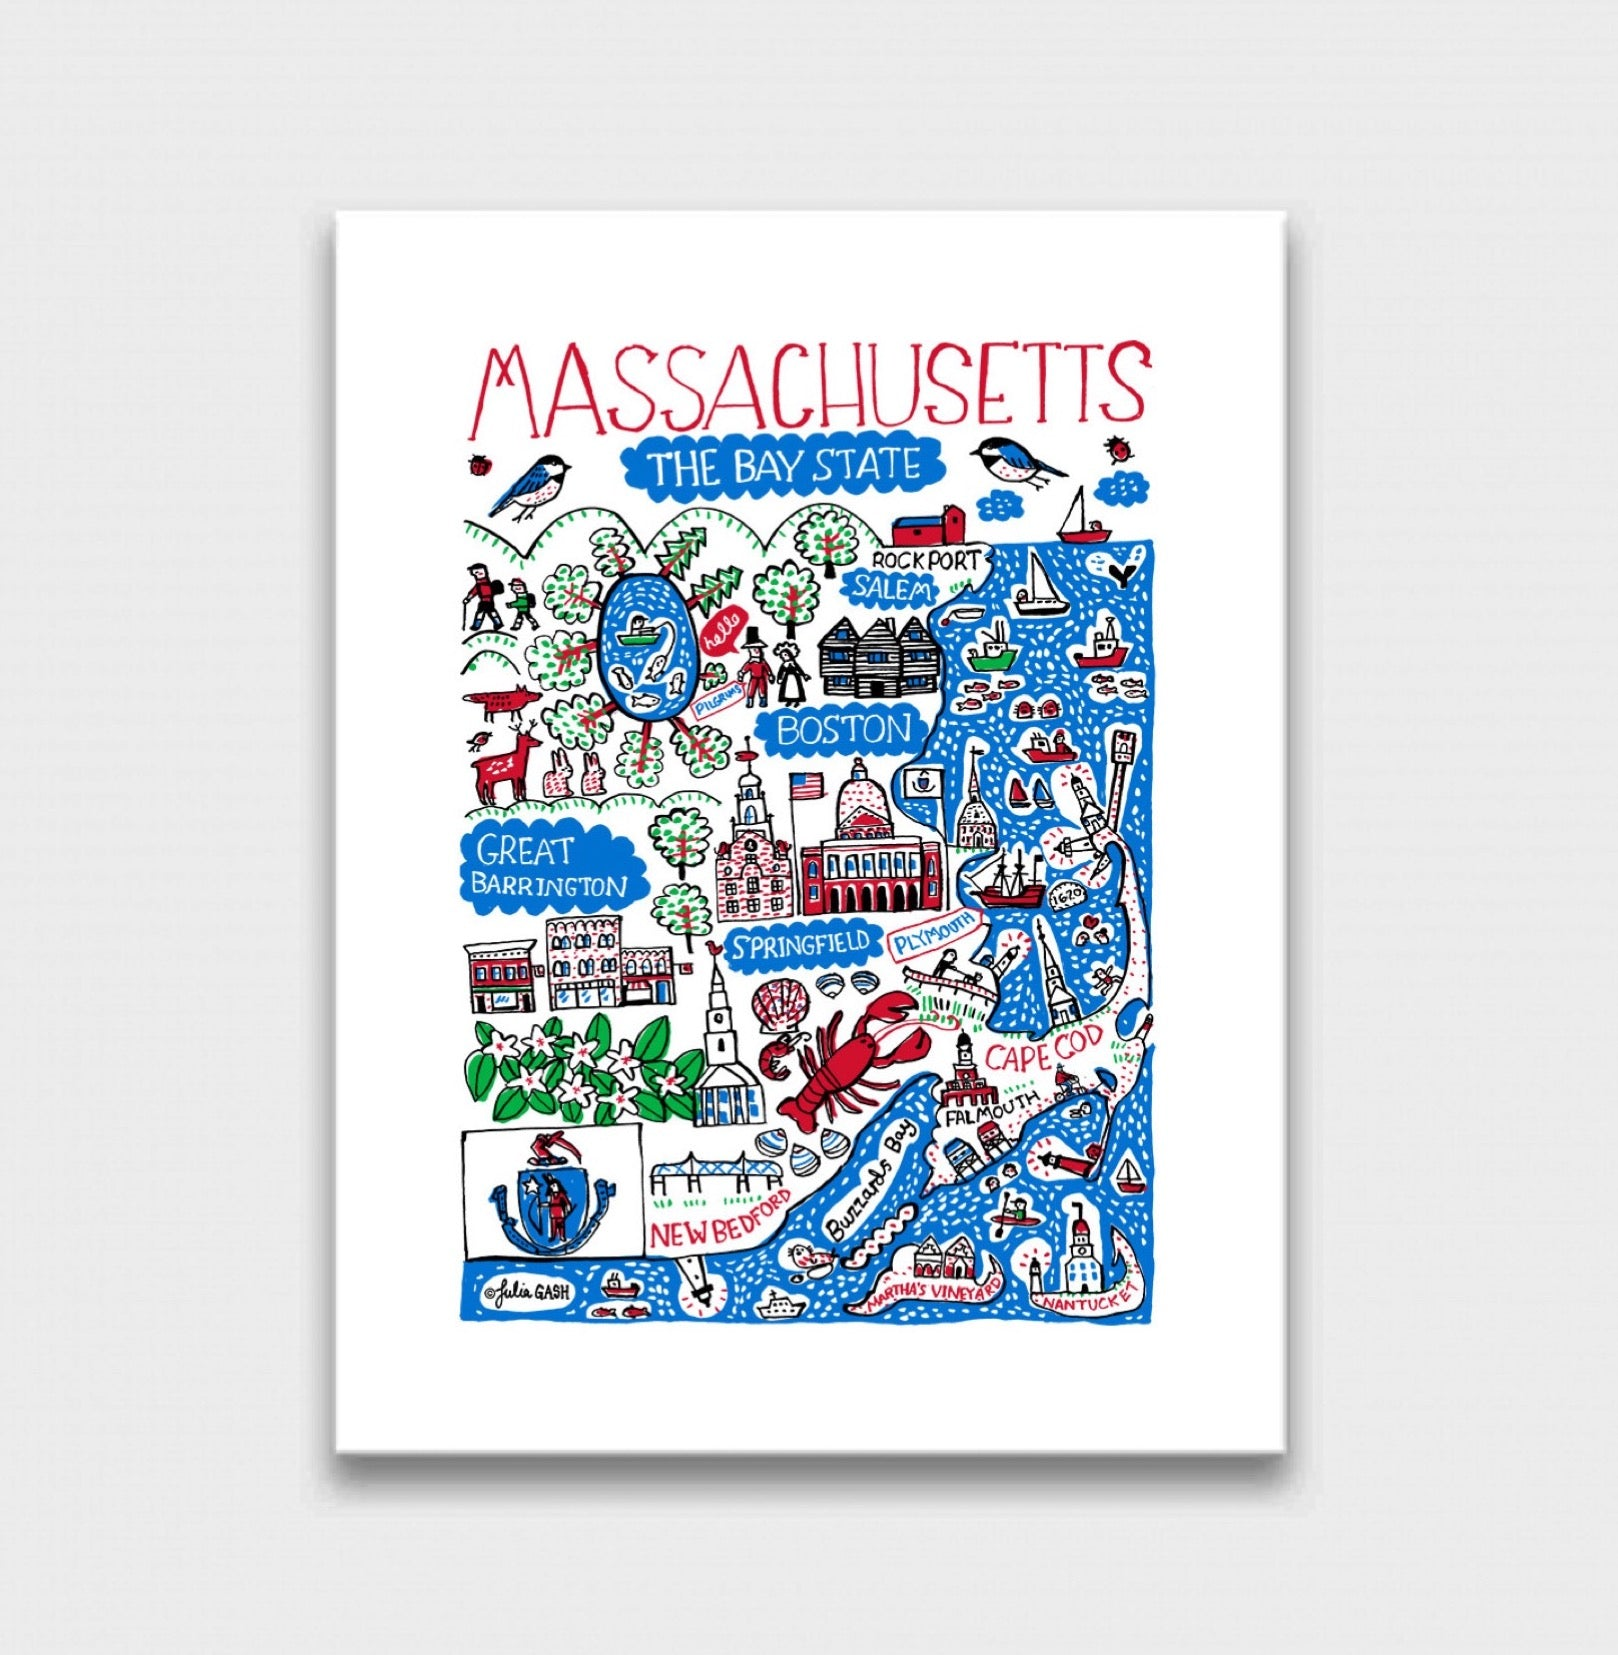 Massachusetts Art Print - Julia Gash